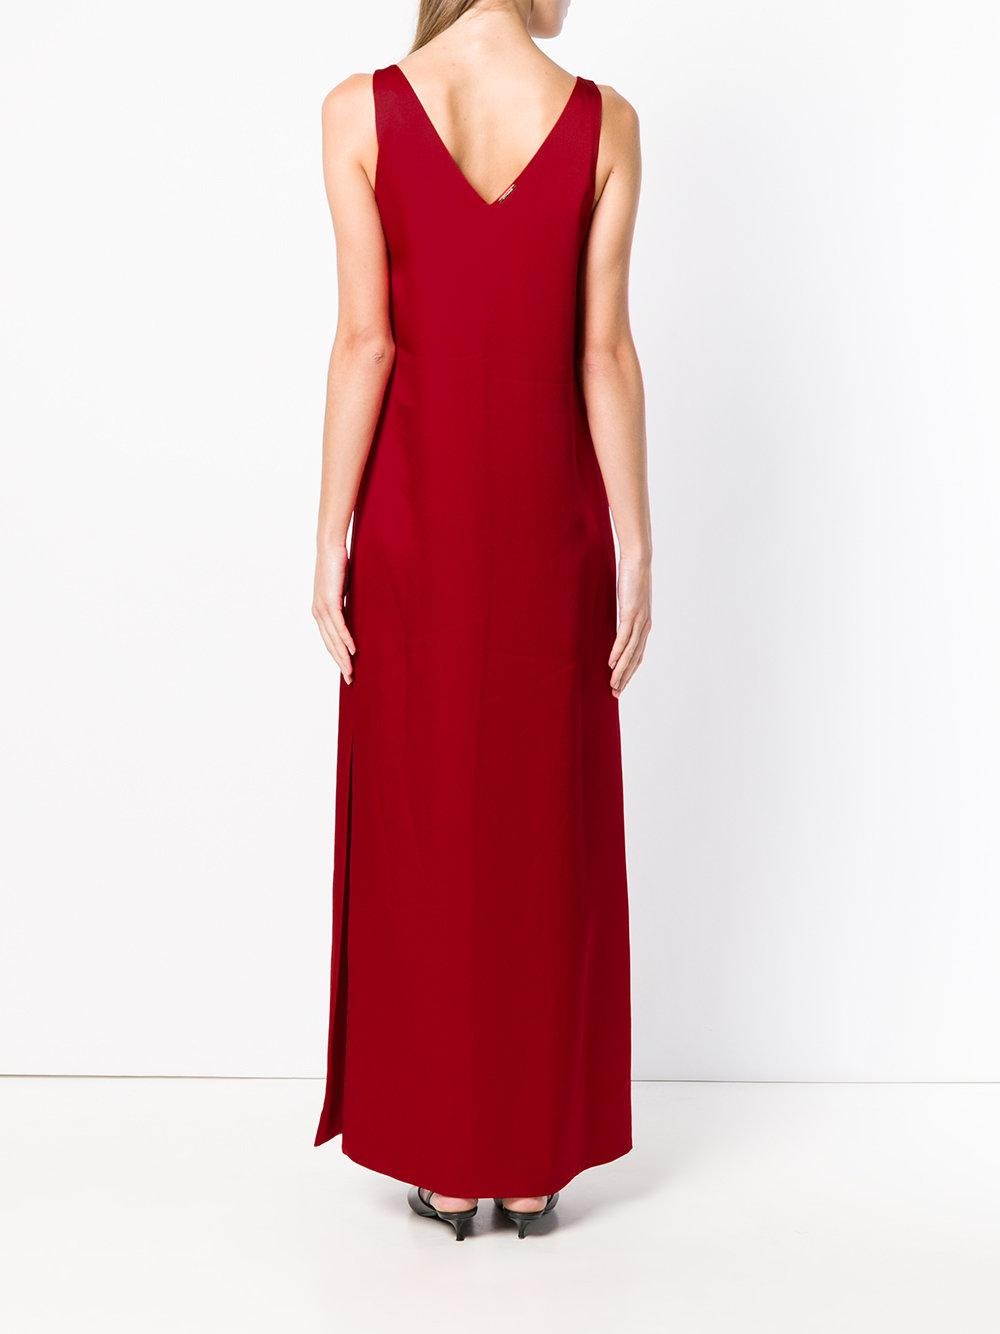 Styland Synthetic V-back Long Dress in Red